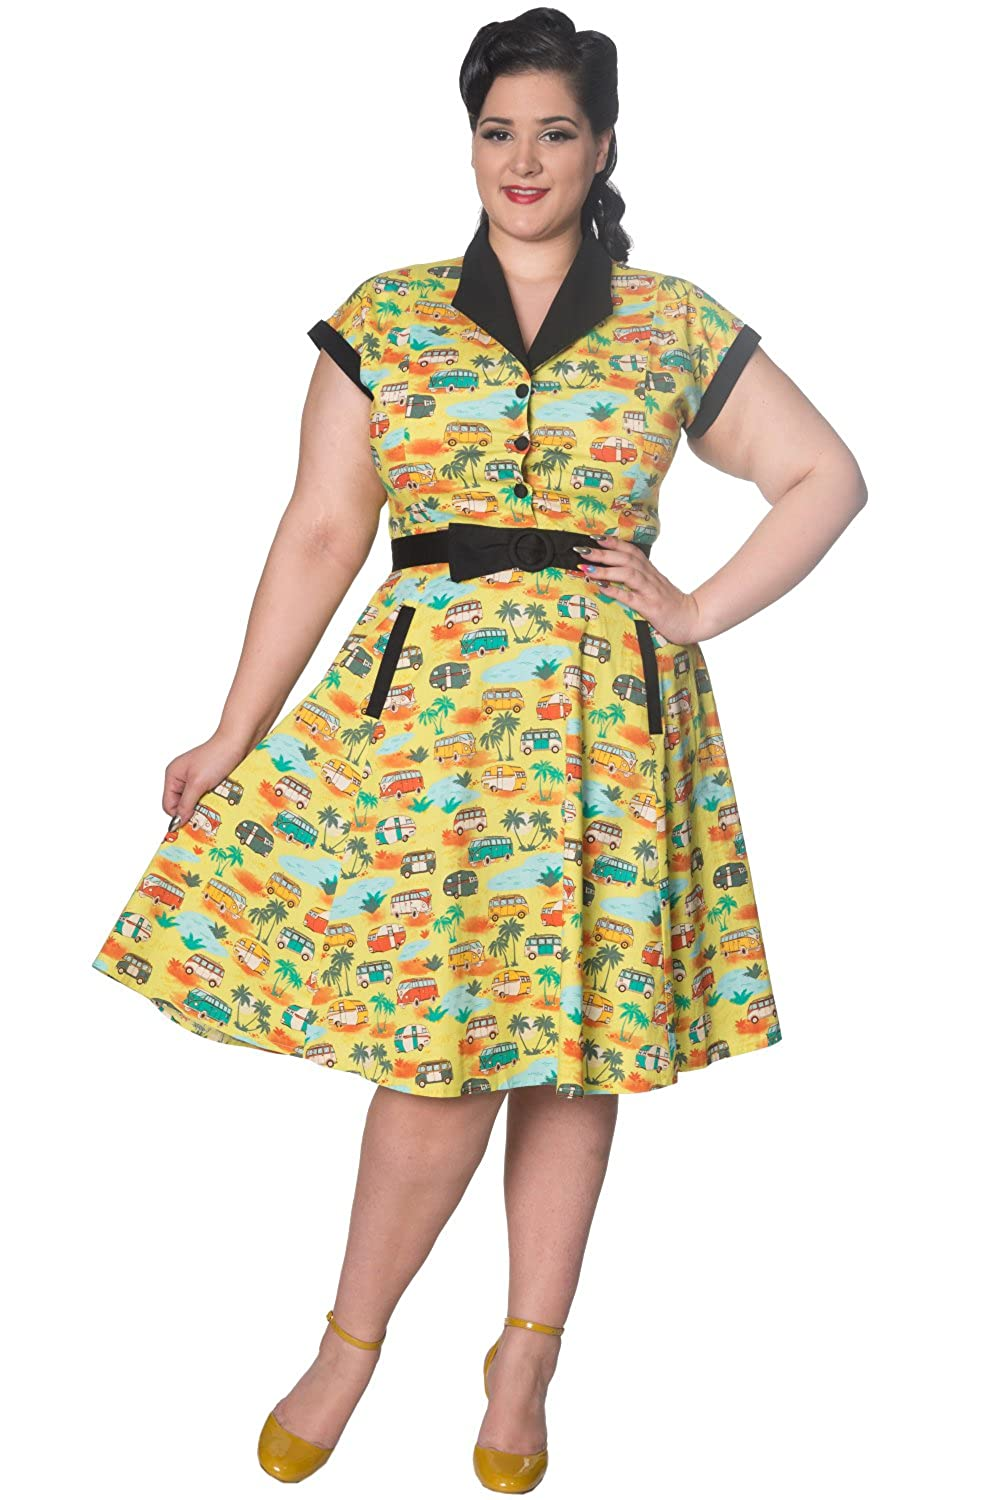 What Did Women Wear in the 1950s? Banned Starlight Plus Size Vintage Retro Womens Dress $67.95 AT vintagedancer.com